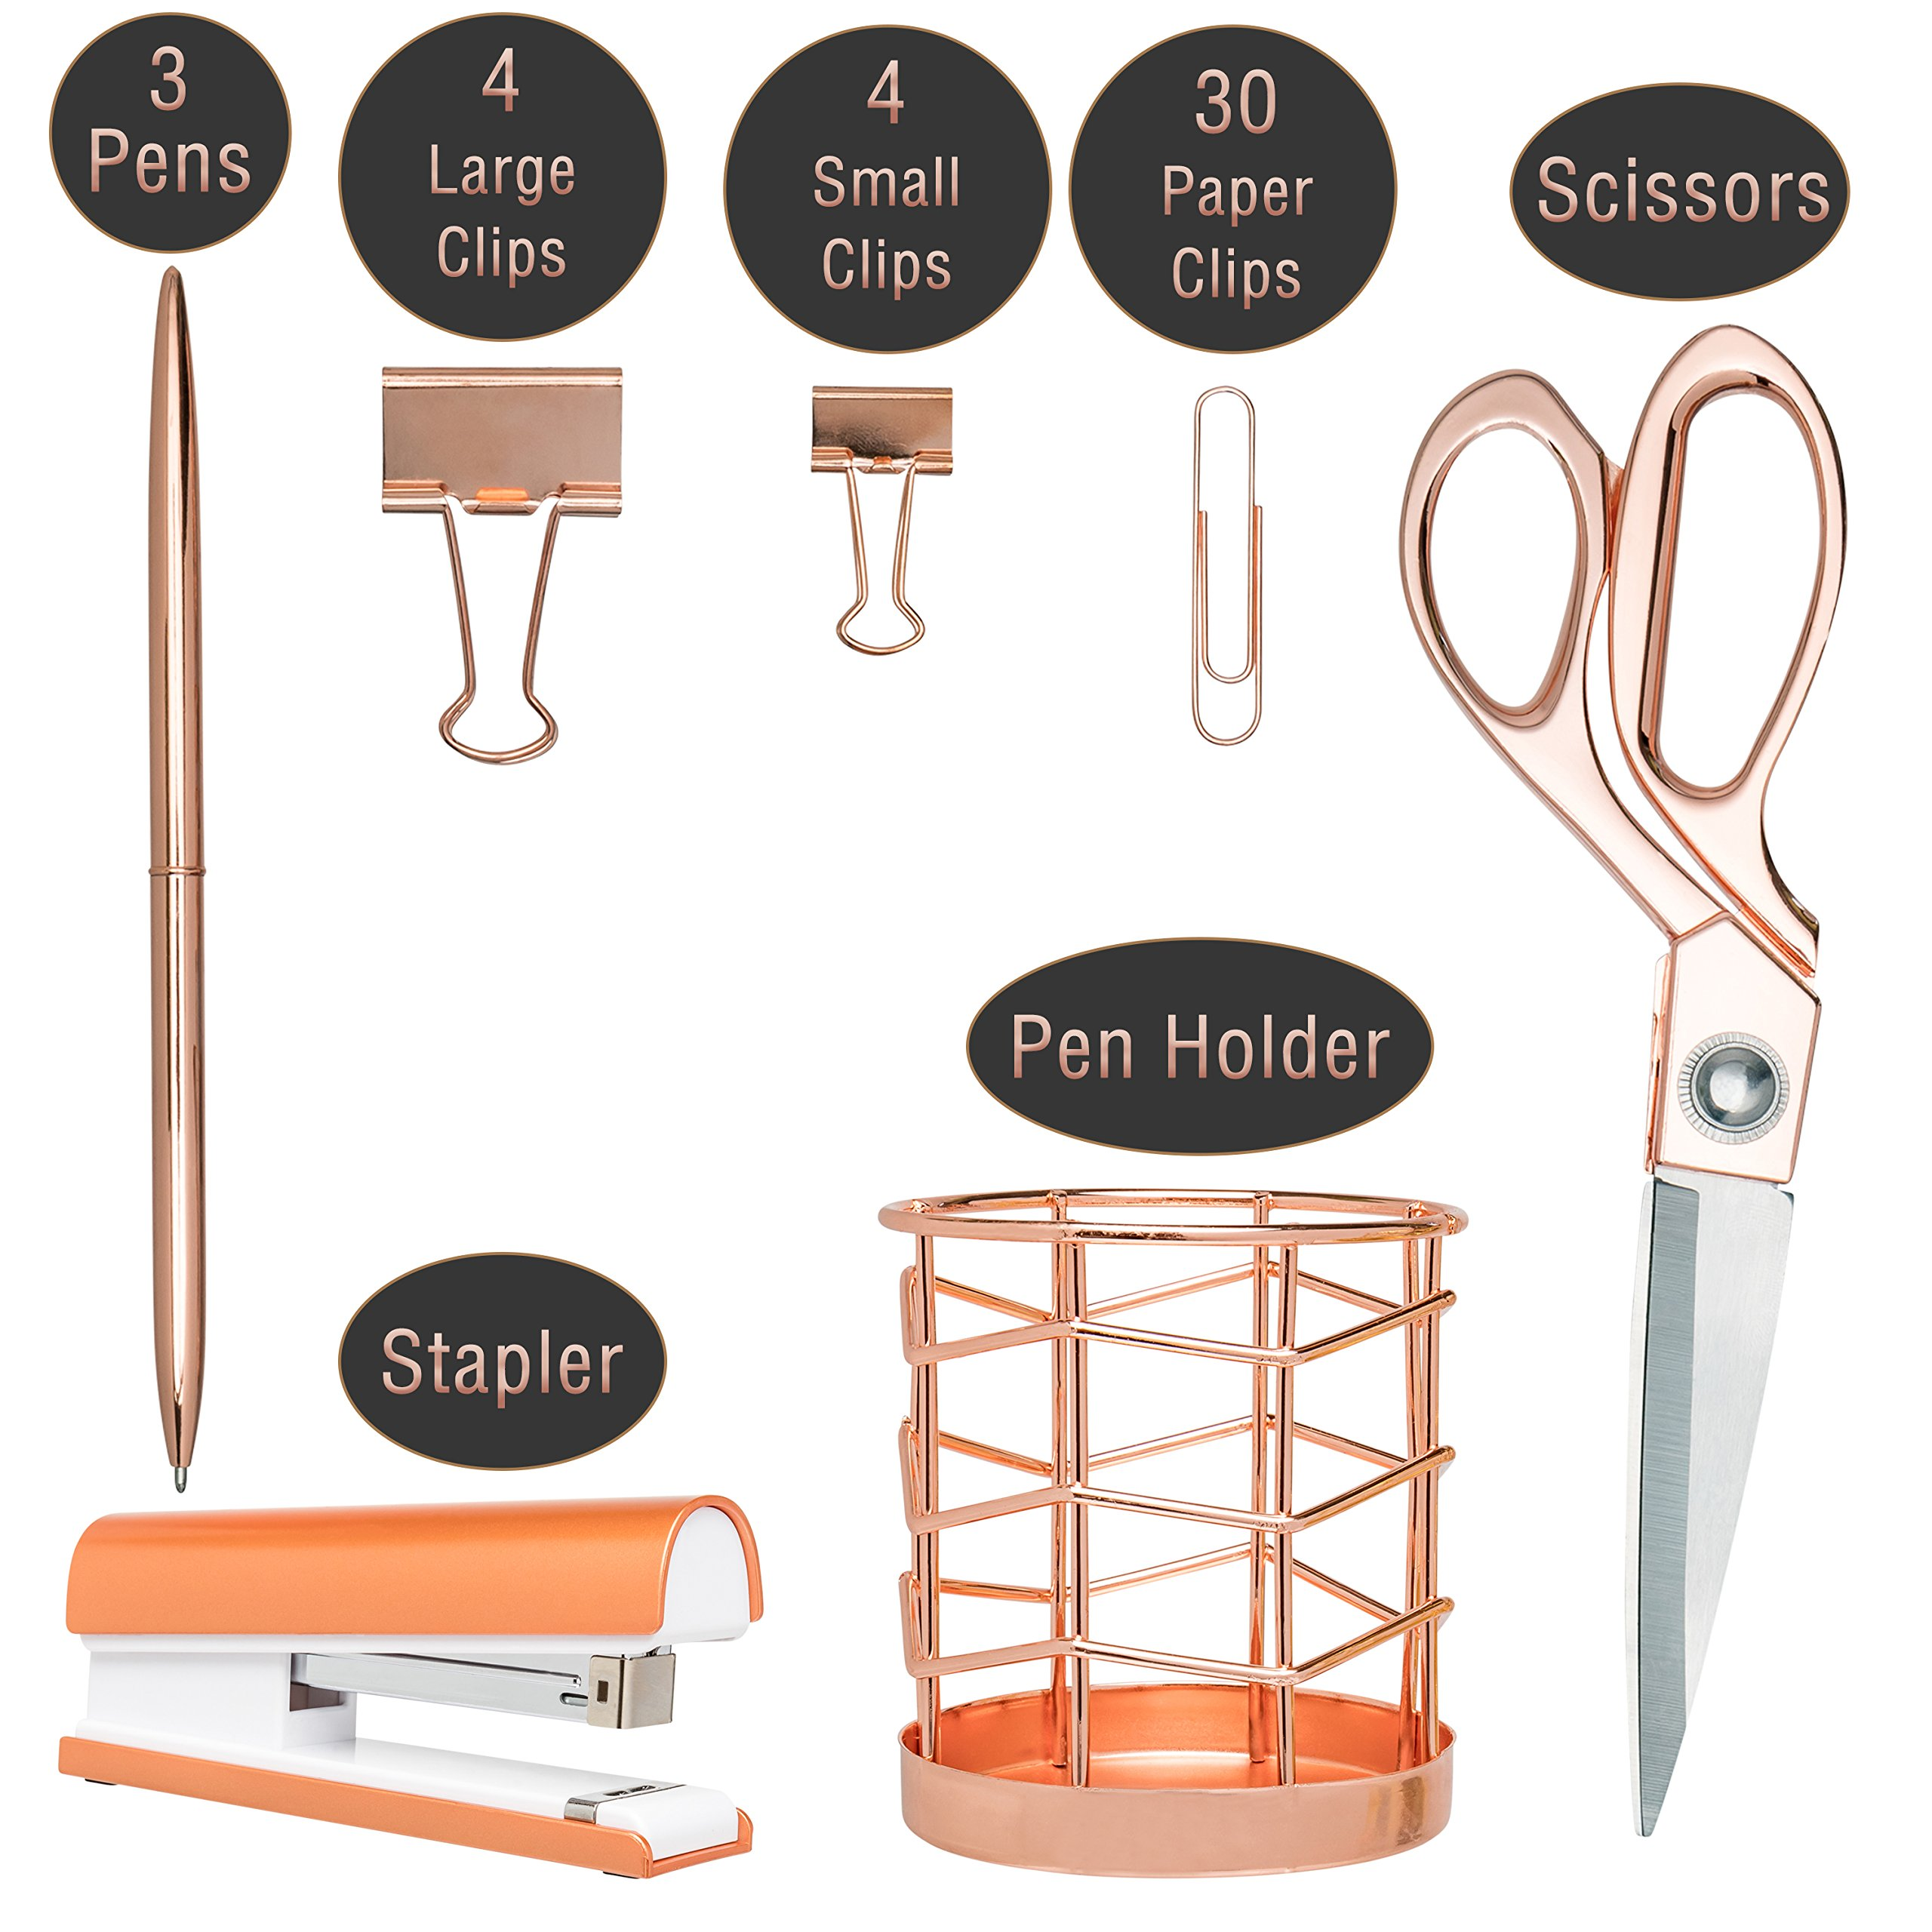 Rose Gold Desk Accessories | 7 Desktop Essentials (44 Items Total) | Office Supply Set & Organizer in Rose Gold Décor by Greenline Goods (Image #3)